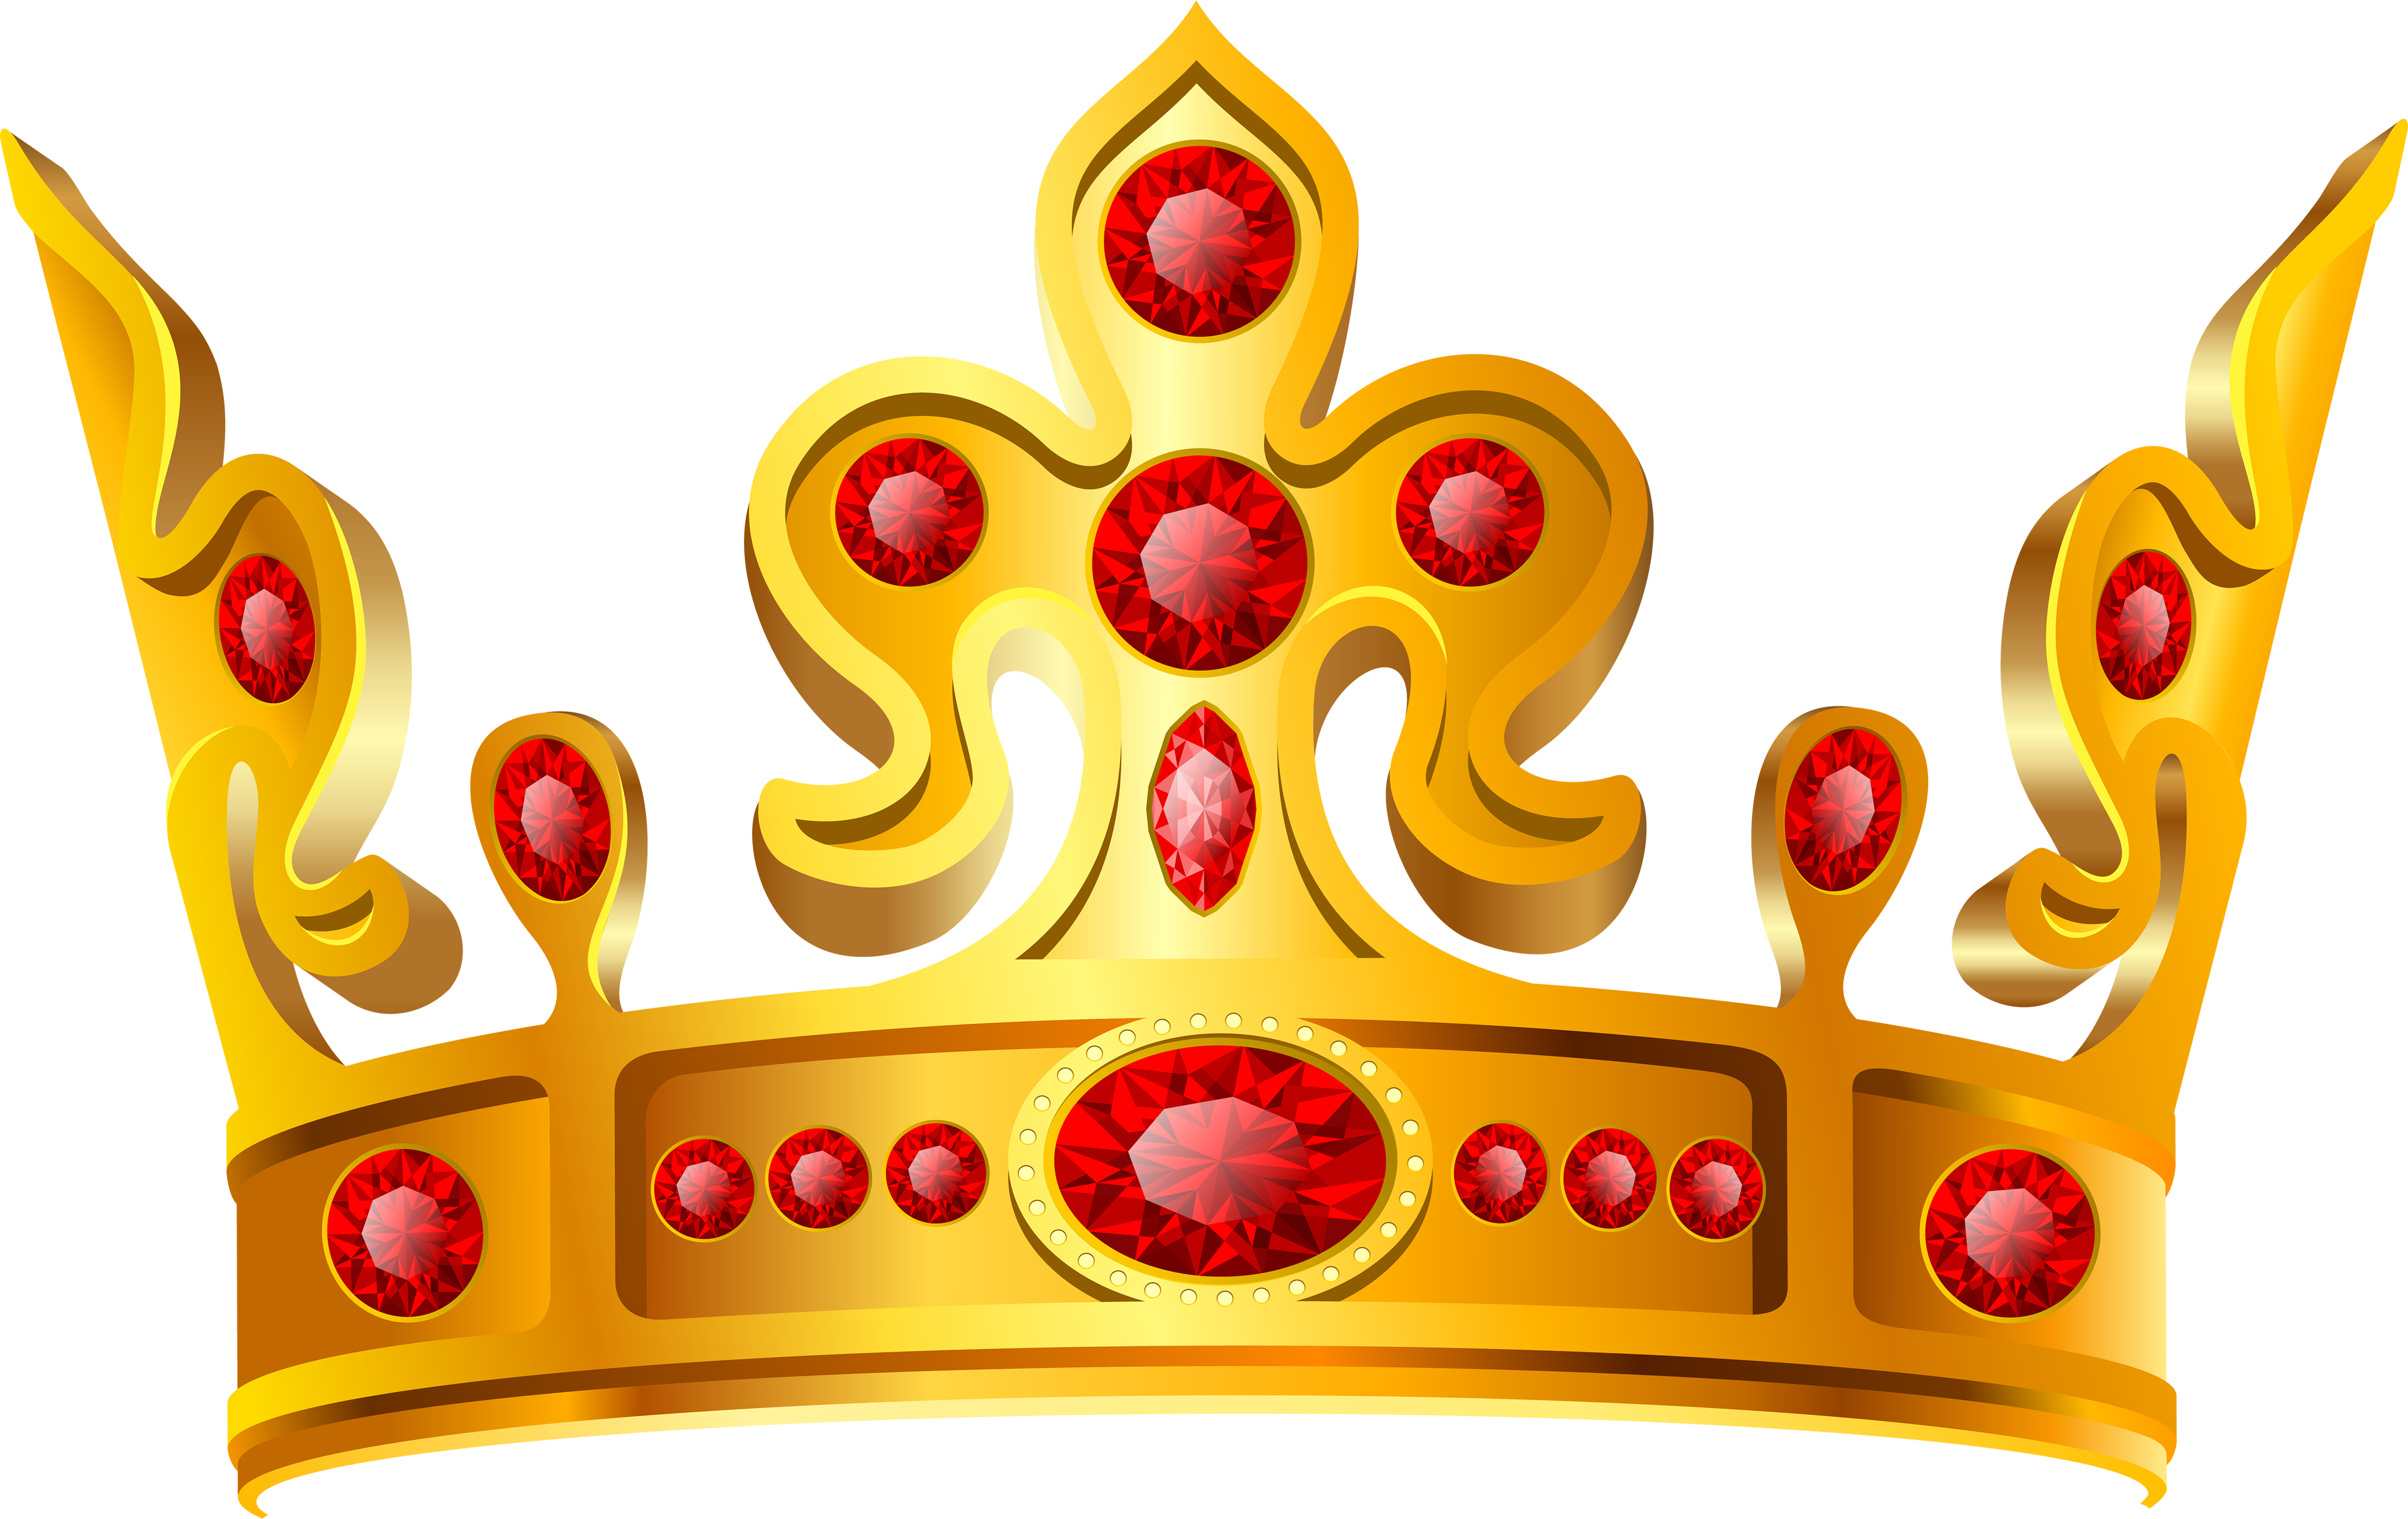 Crown of thorn and glory clipart clipart royalty free stock Crown PNG images free download clipart royalty free stock